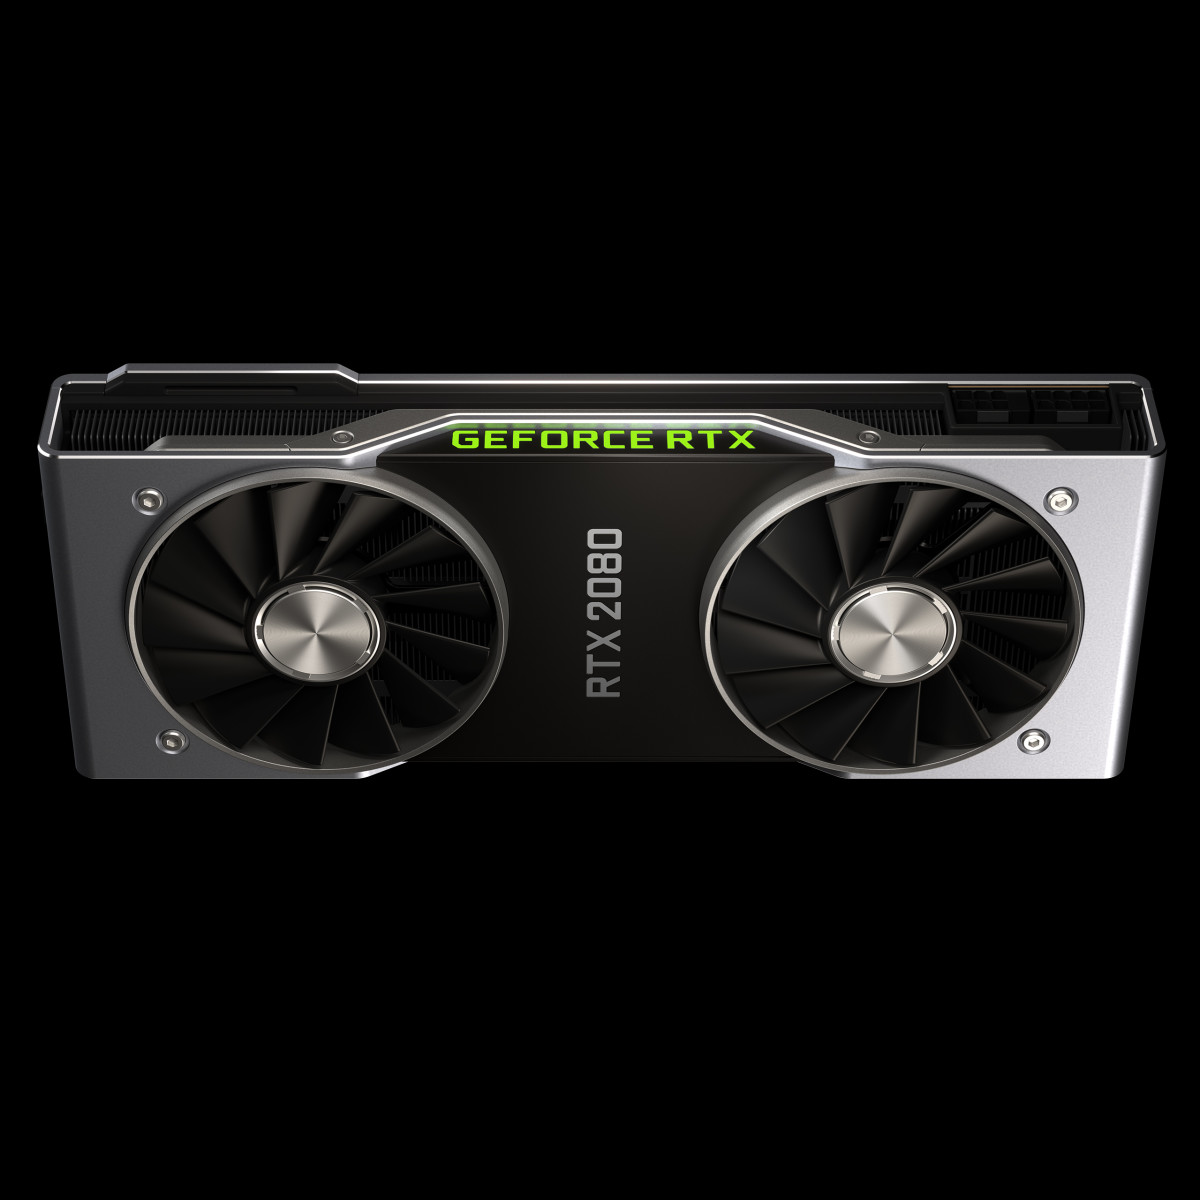 nvidia-rtx-2080-vs-gtx-1080-ti-review-and-benchmarks